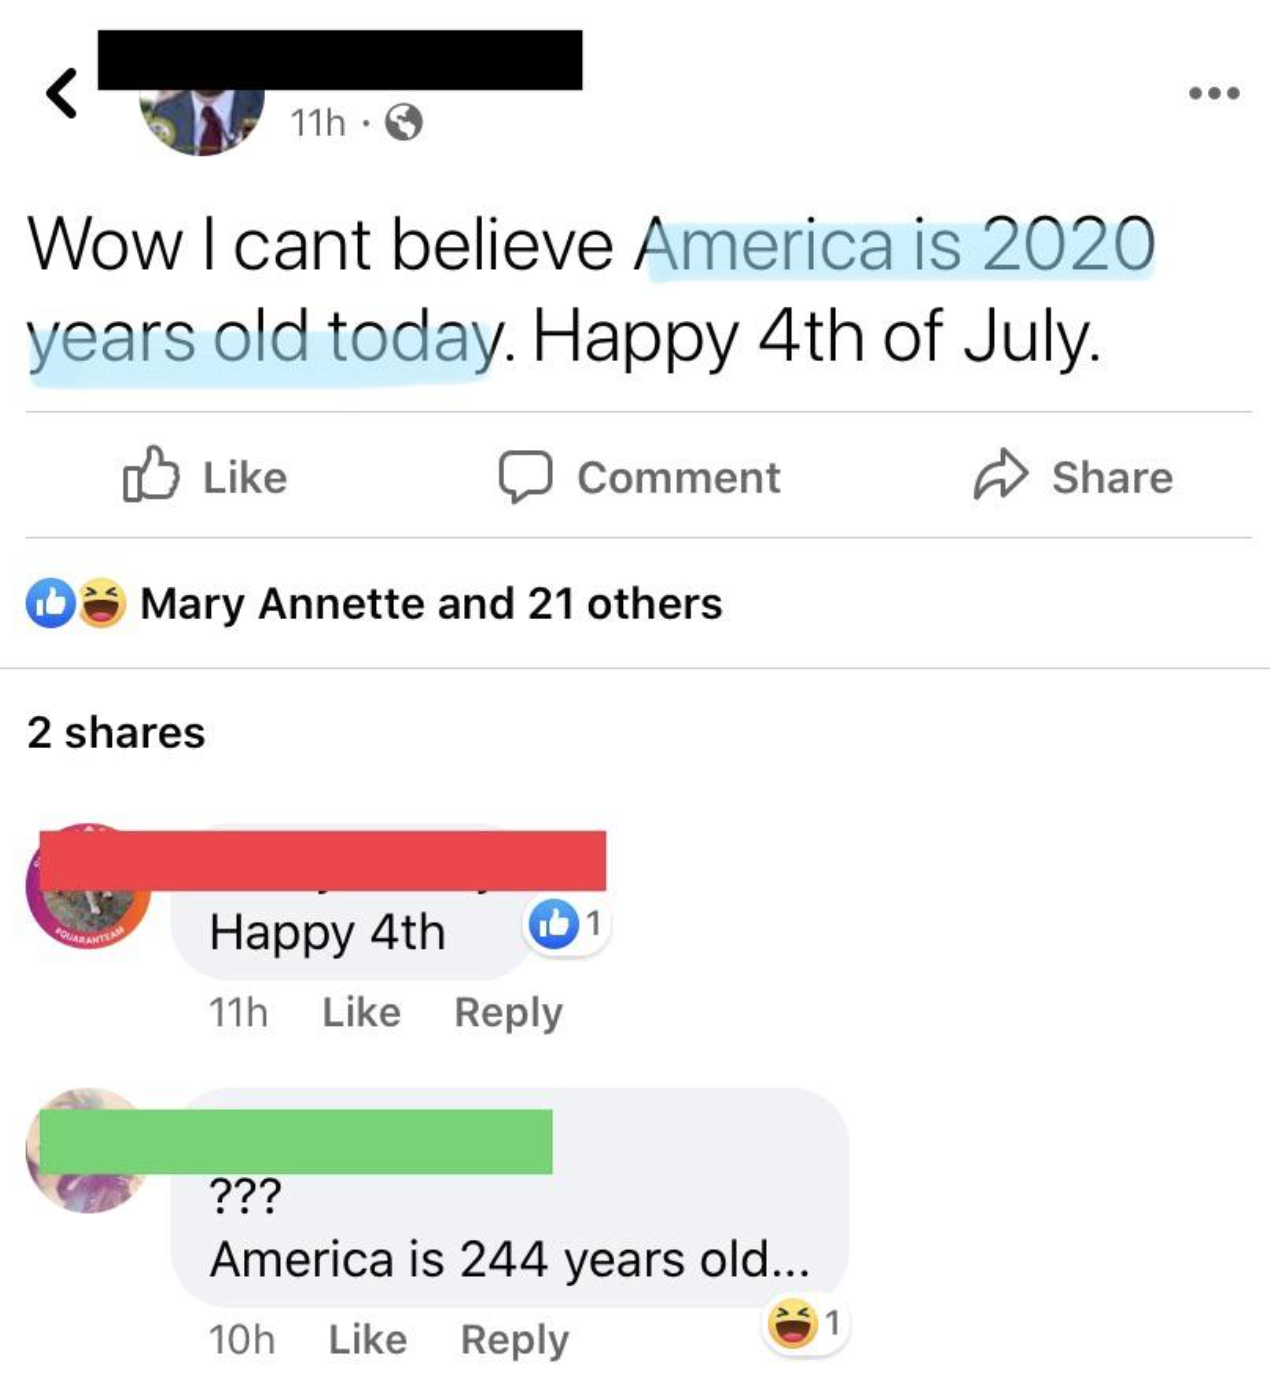 facebook post of someone wishing america a happy 2020th birthday on the 4th of july